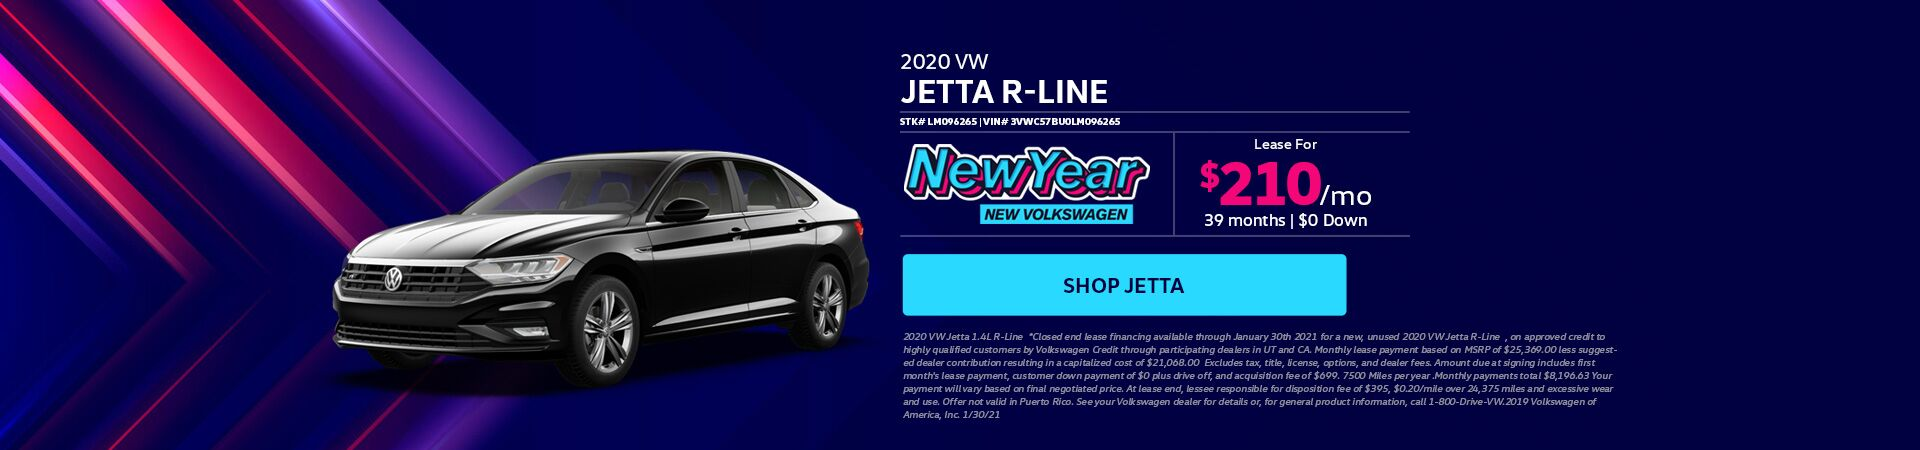 Jetta R Line -updated 01.08.21